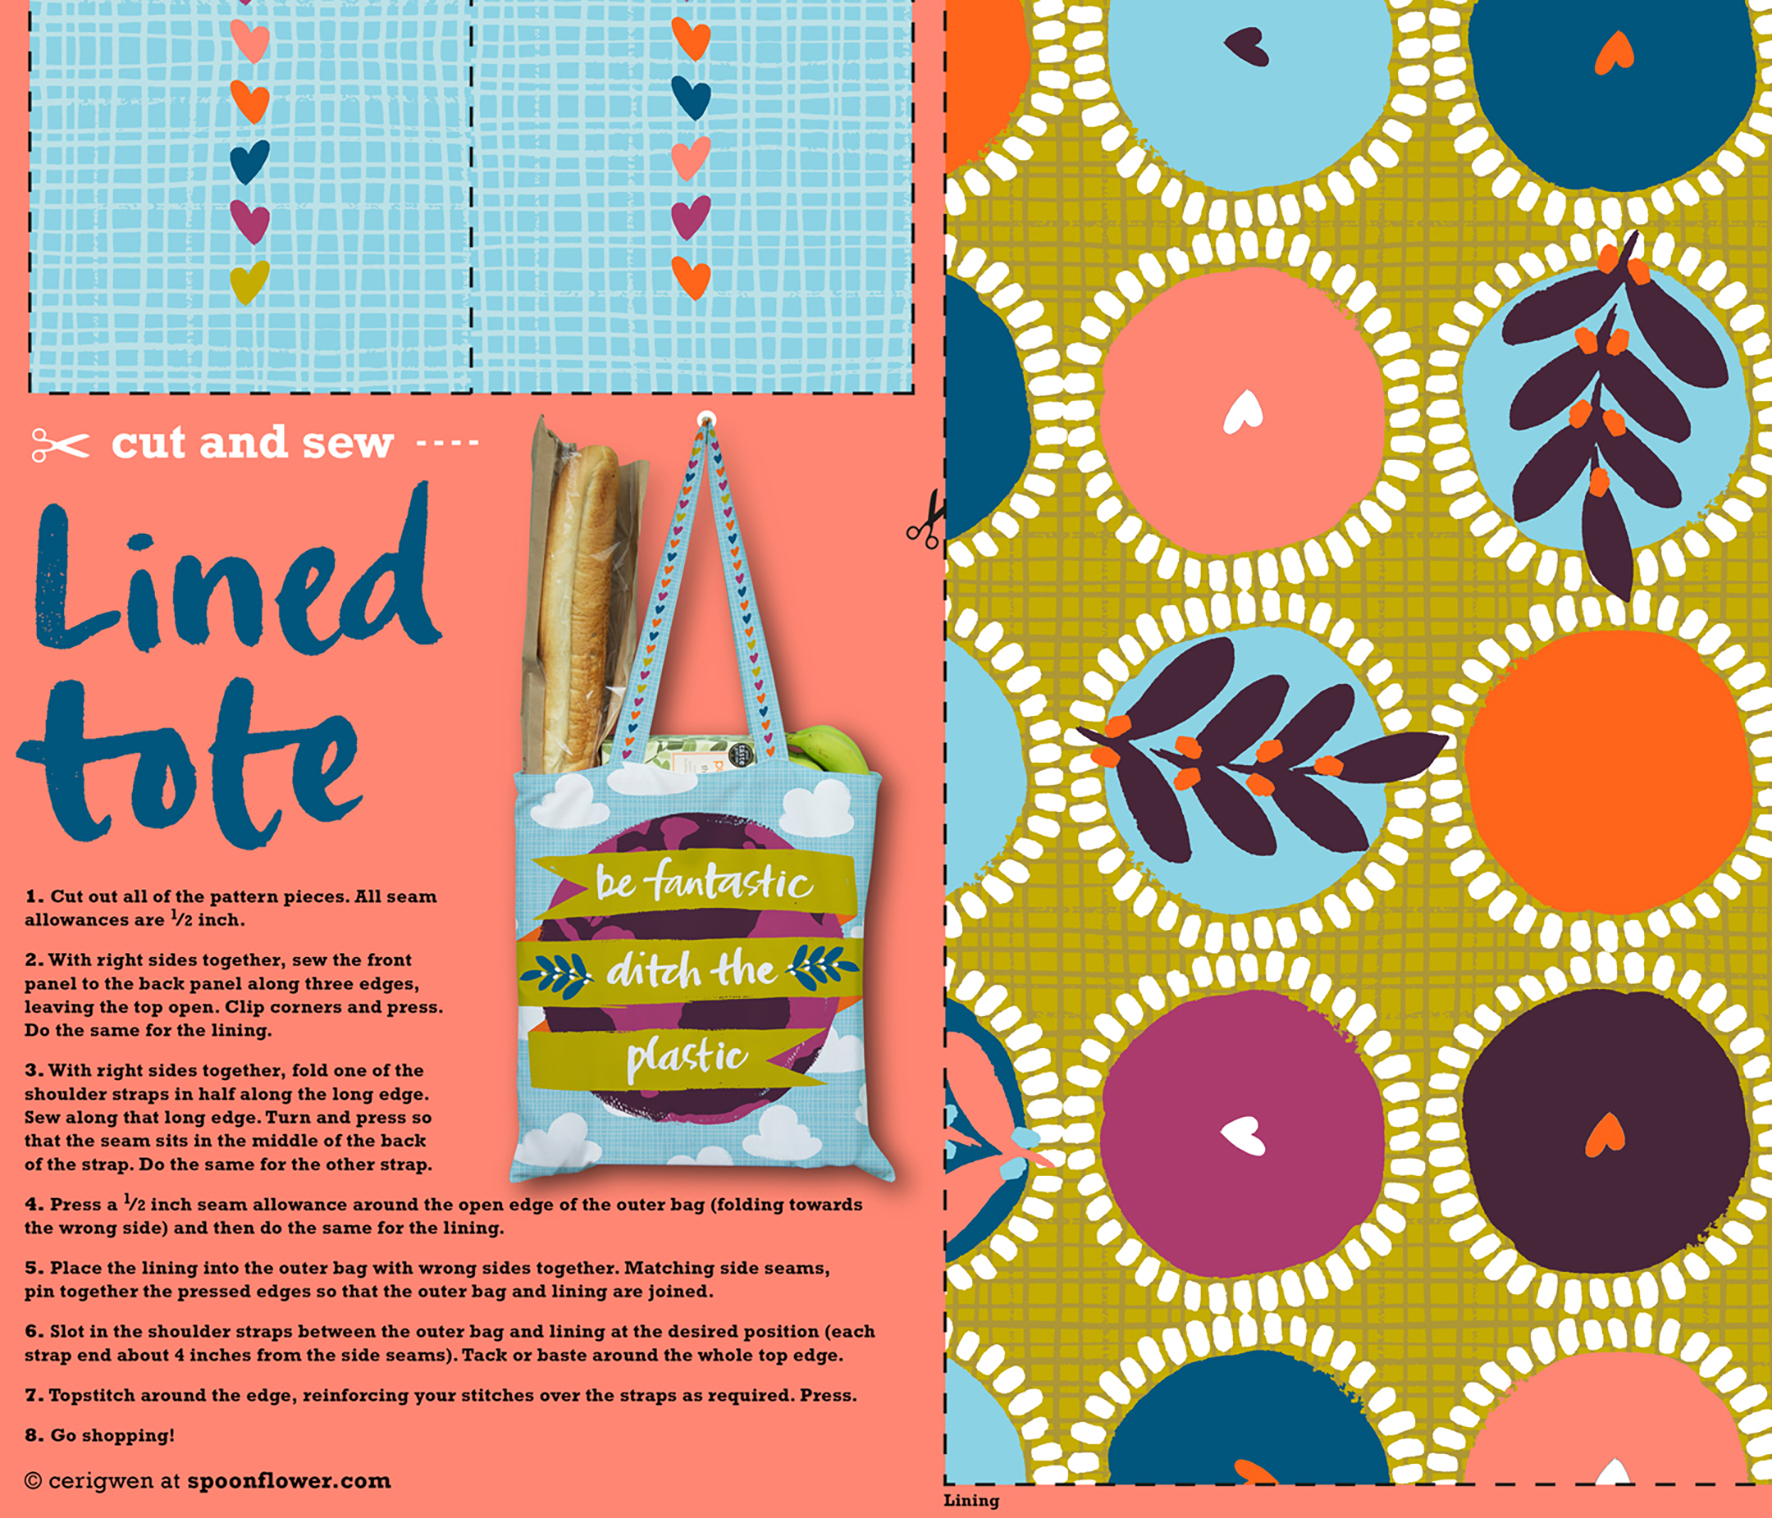 7 Tips for Designing a Cut-and-Sew Project | Spoonflower Blog